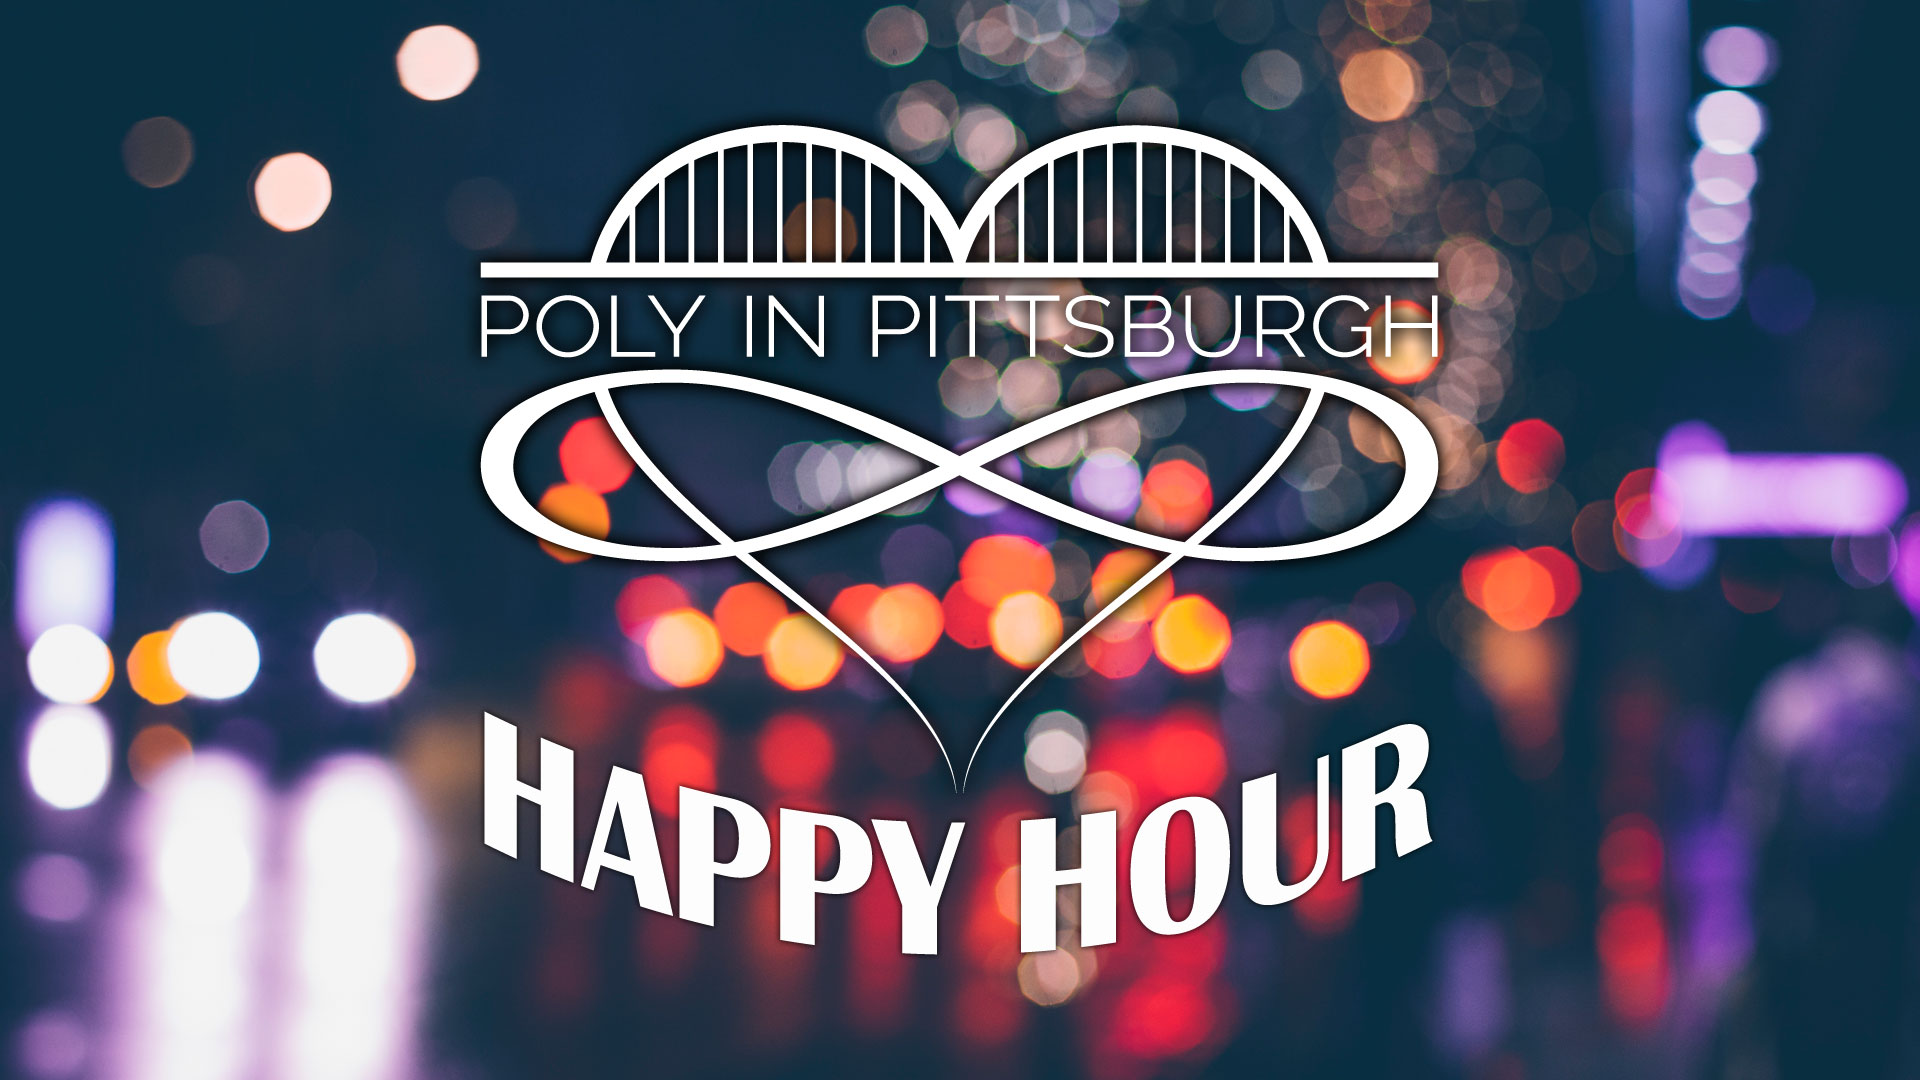 Poly in Pittsburgh Happy Hour